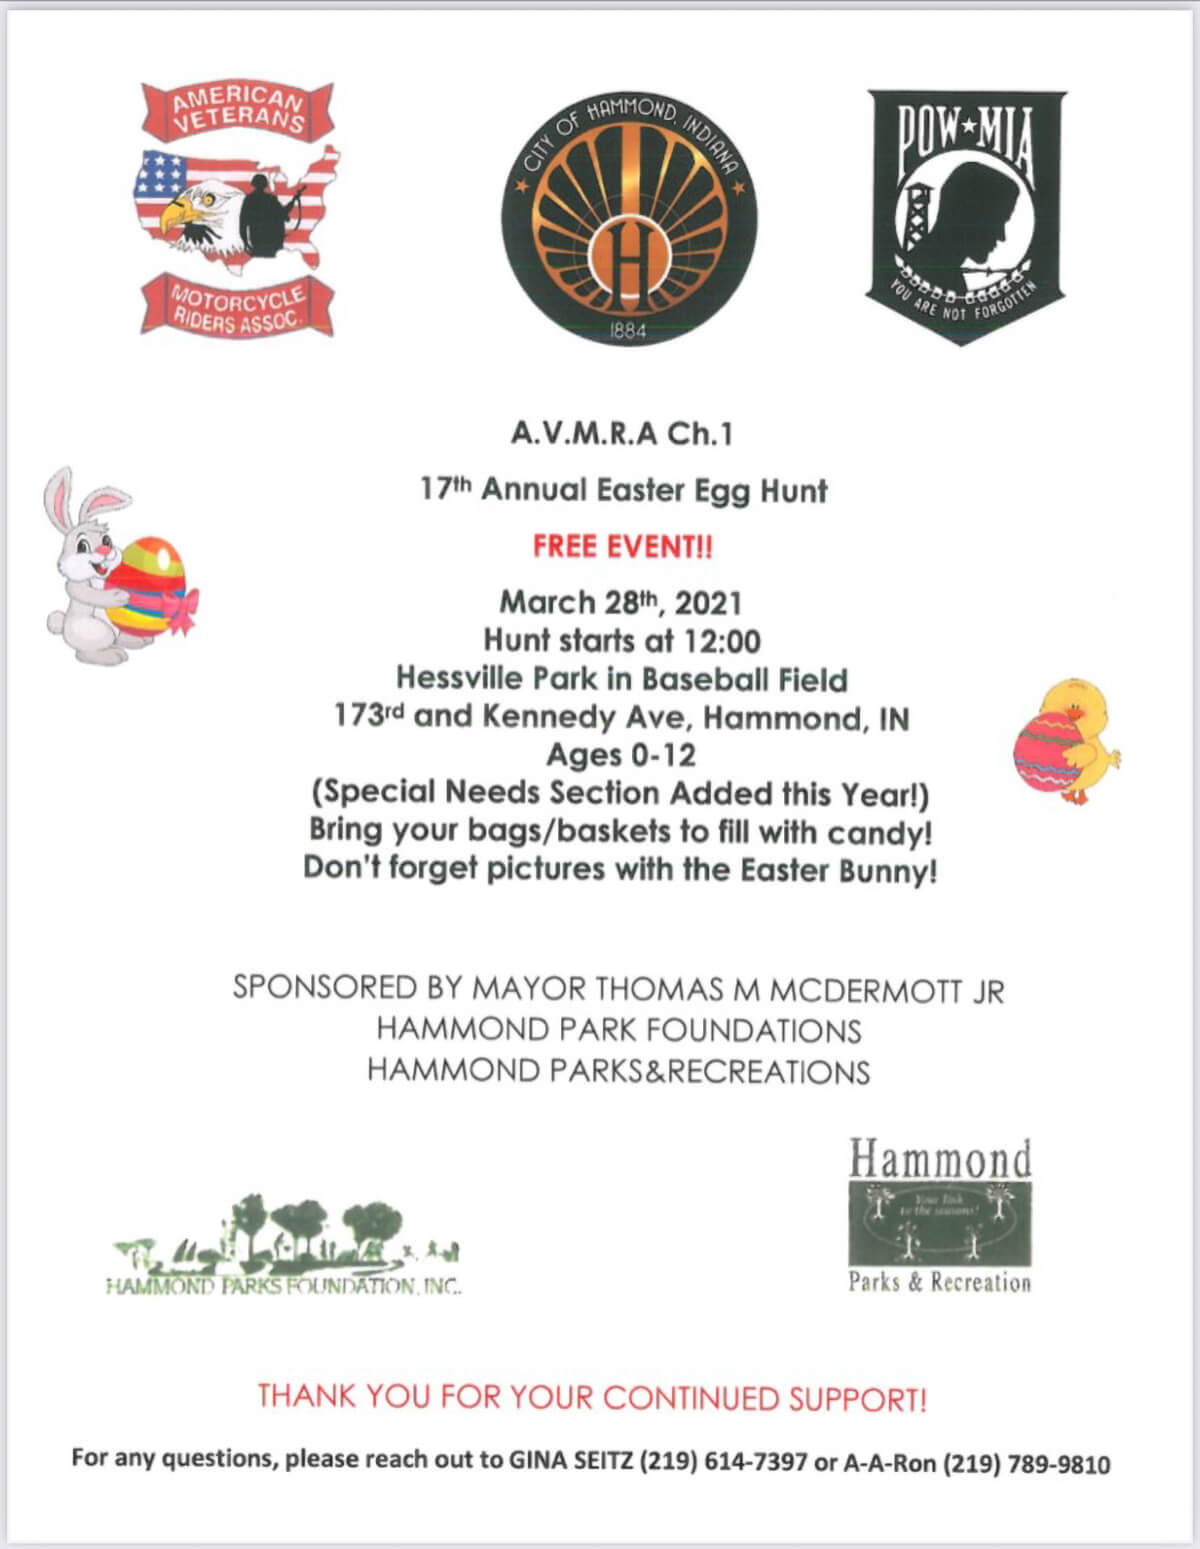 American Veterans Motorcycle Riders Association, Hammond Parks & Recreation and Hammond Parks Foundation invite you to attend our 16th Annual Easter Egg Hunt.